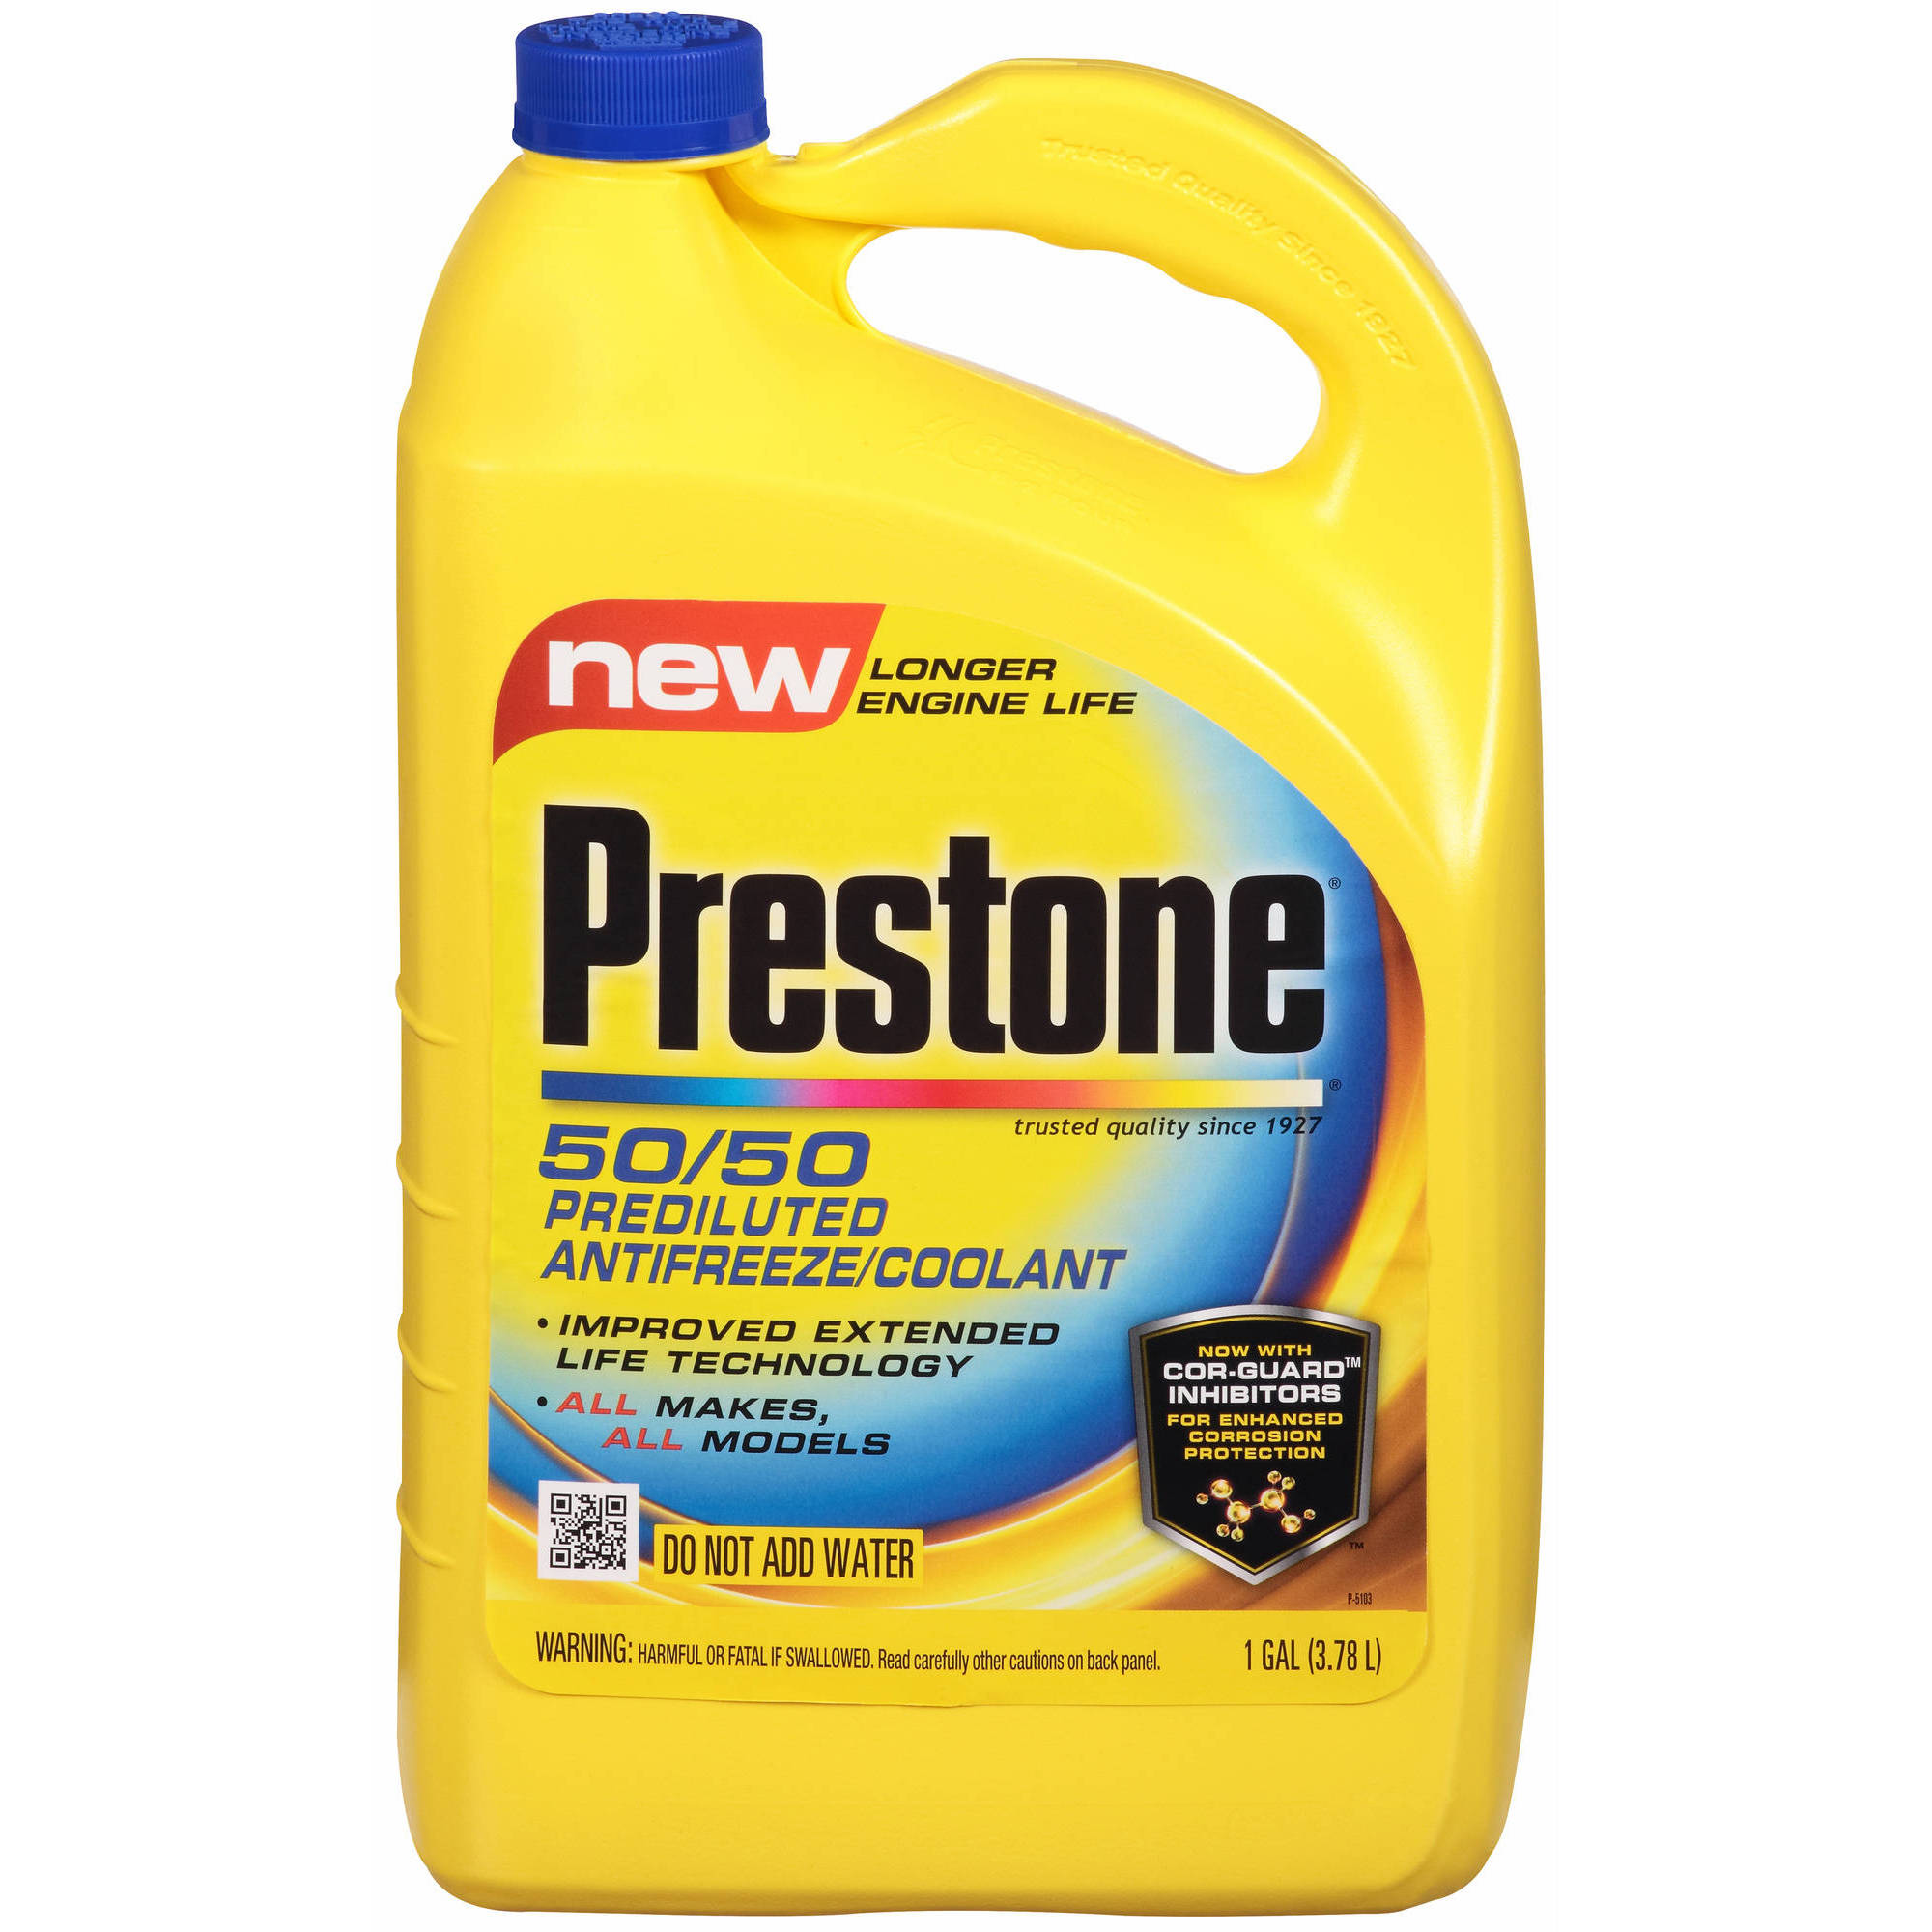 What Color Is Prestone Coolant >> Prestone Extended Life Prediluted Antifreeze/Coolant, 1 Gallon, (6-Pack) - Walmart.com